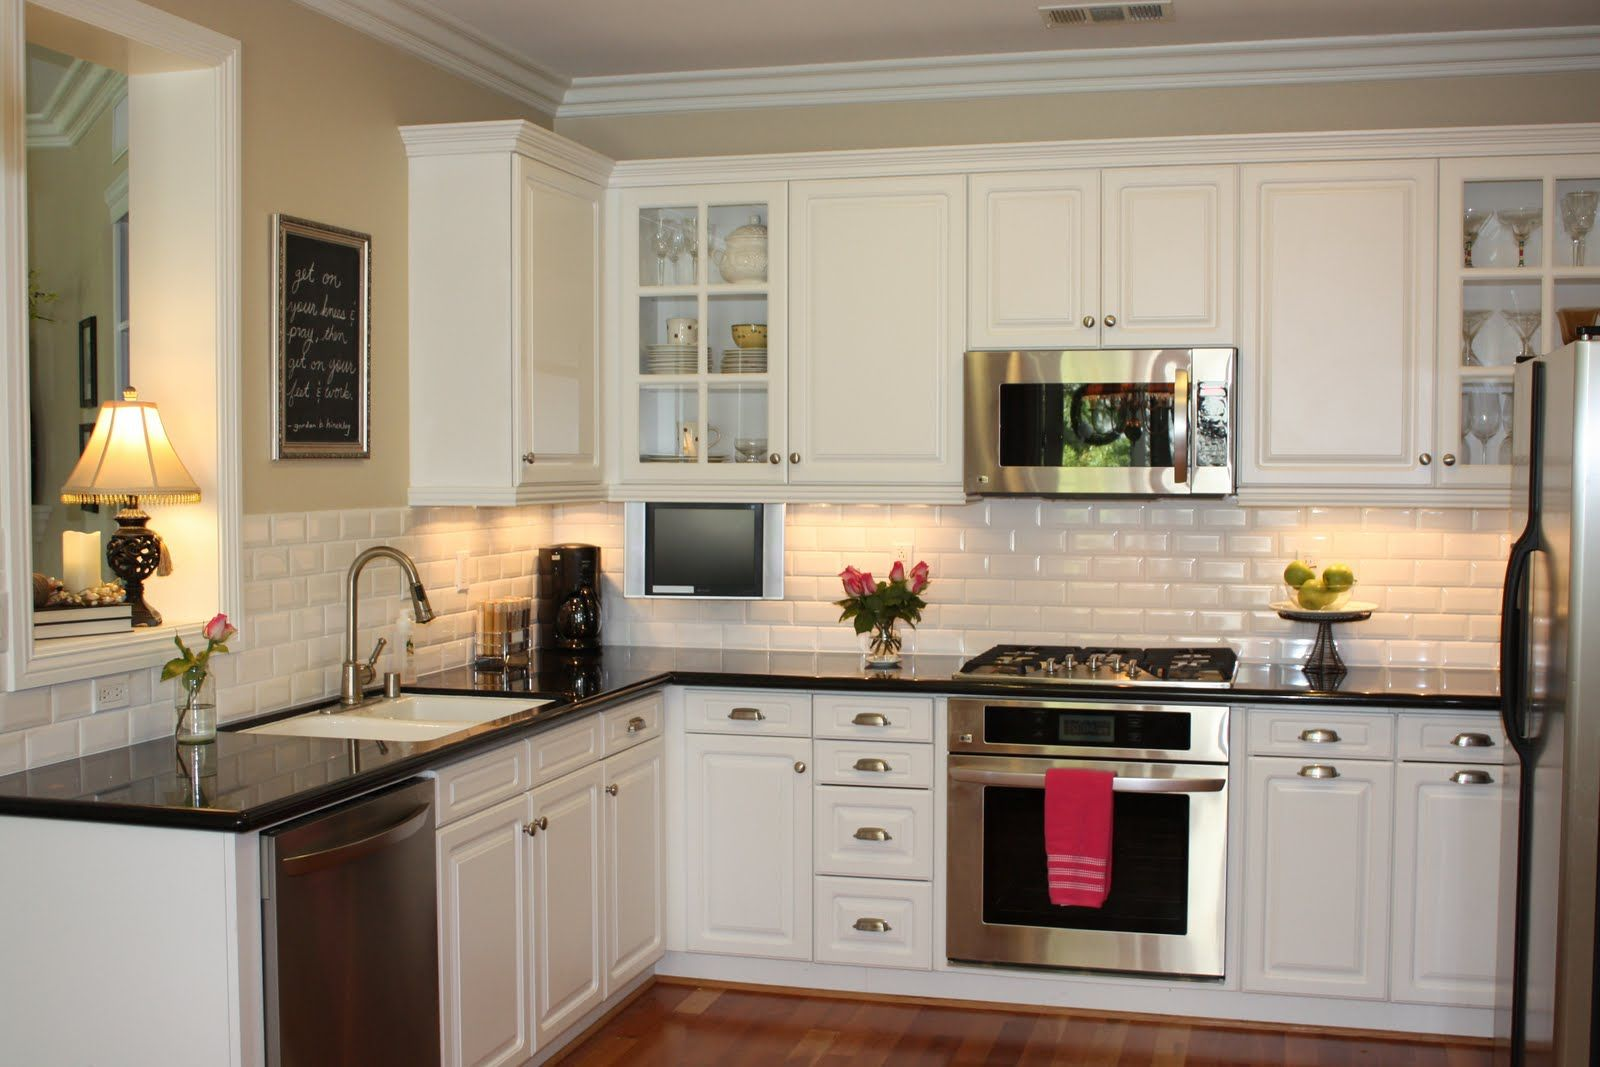 Best White Cabinet Feat Black Countertop Design For Small L 400 x 300